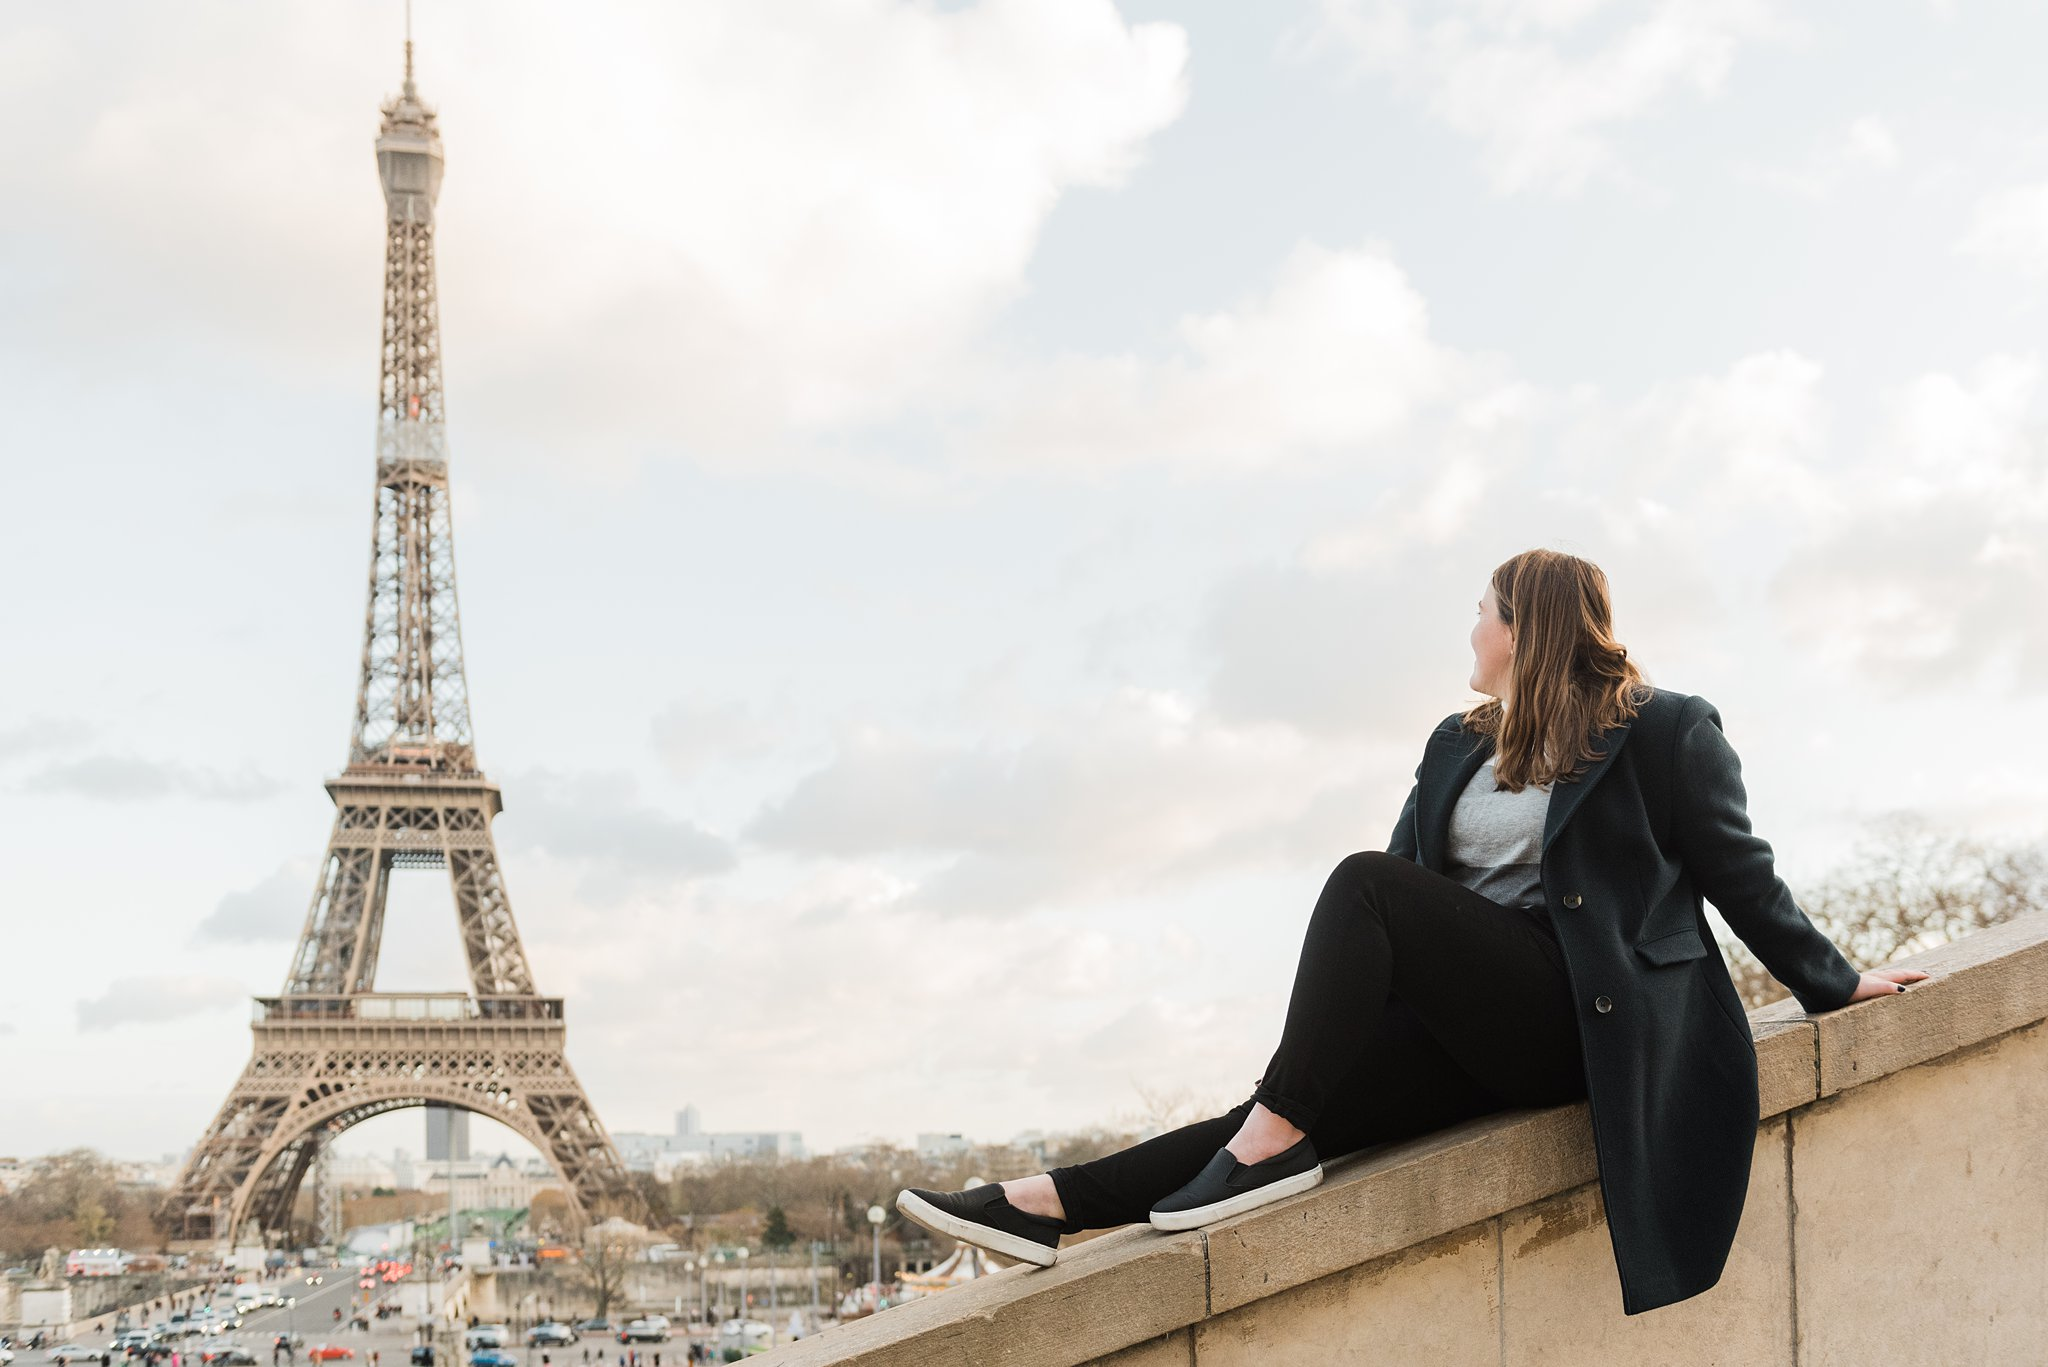 Woman sitting on ledge looking at the Eiffel Tower during a winter photo shoot in Paris